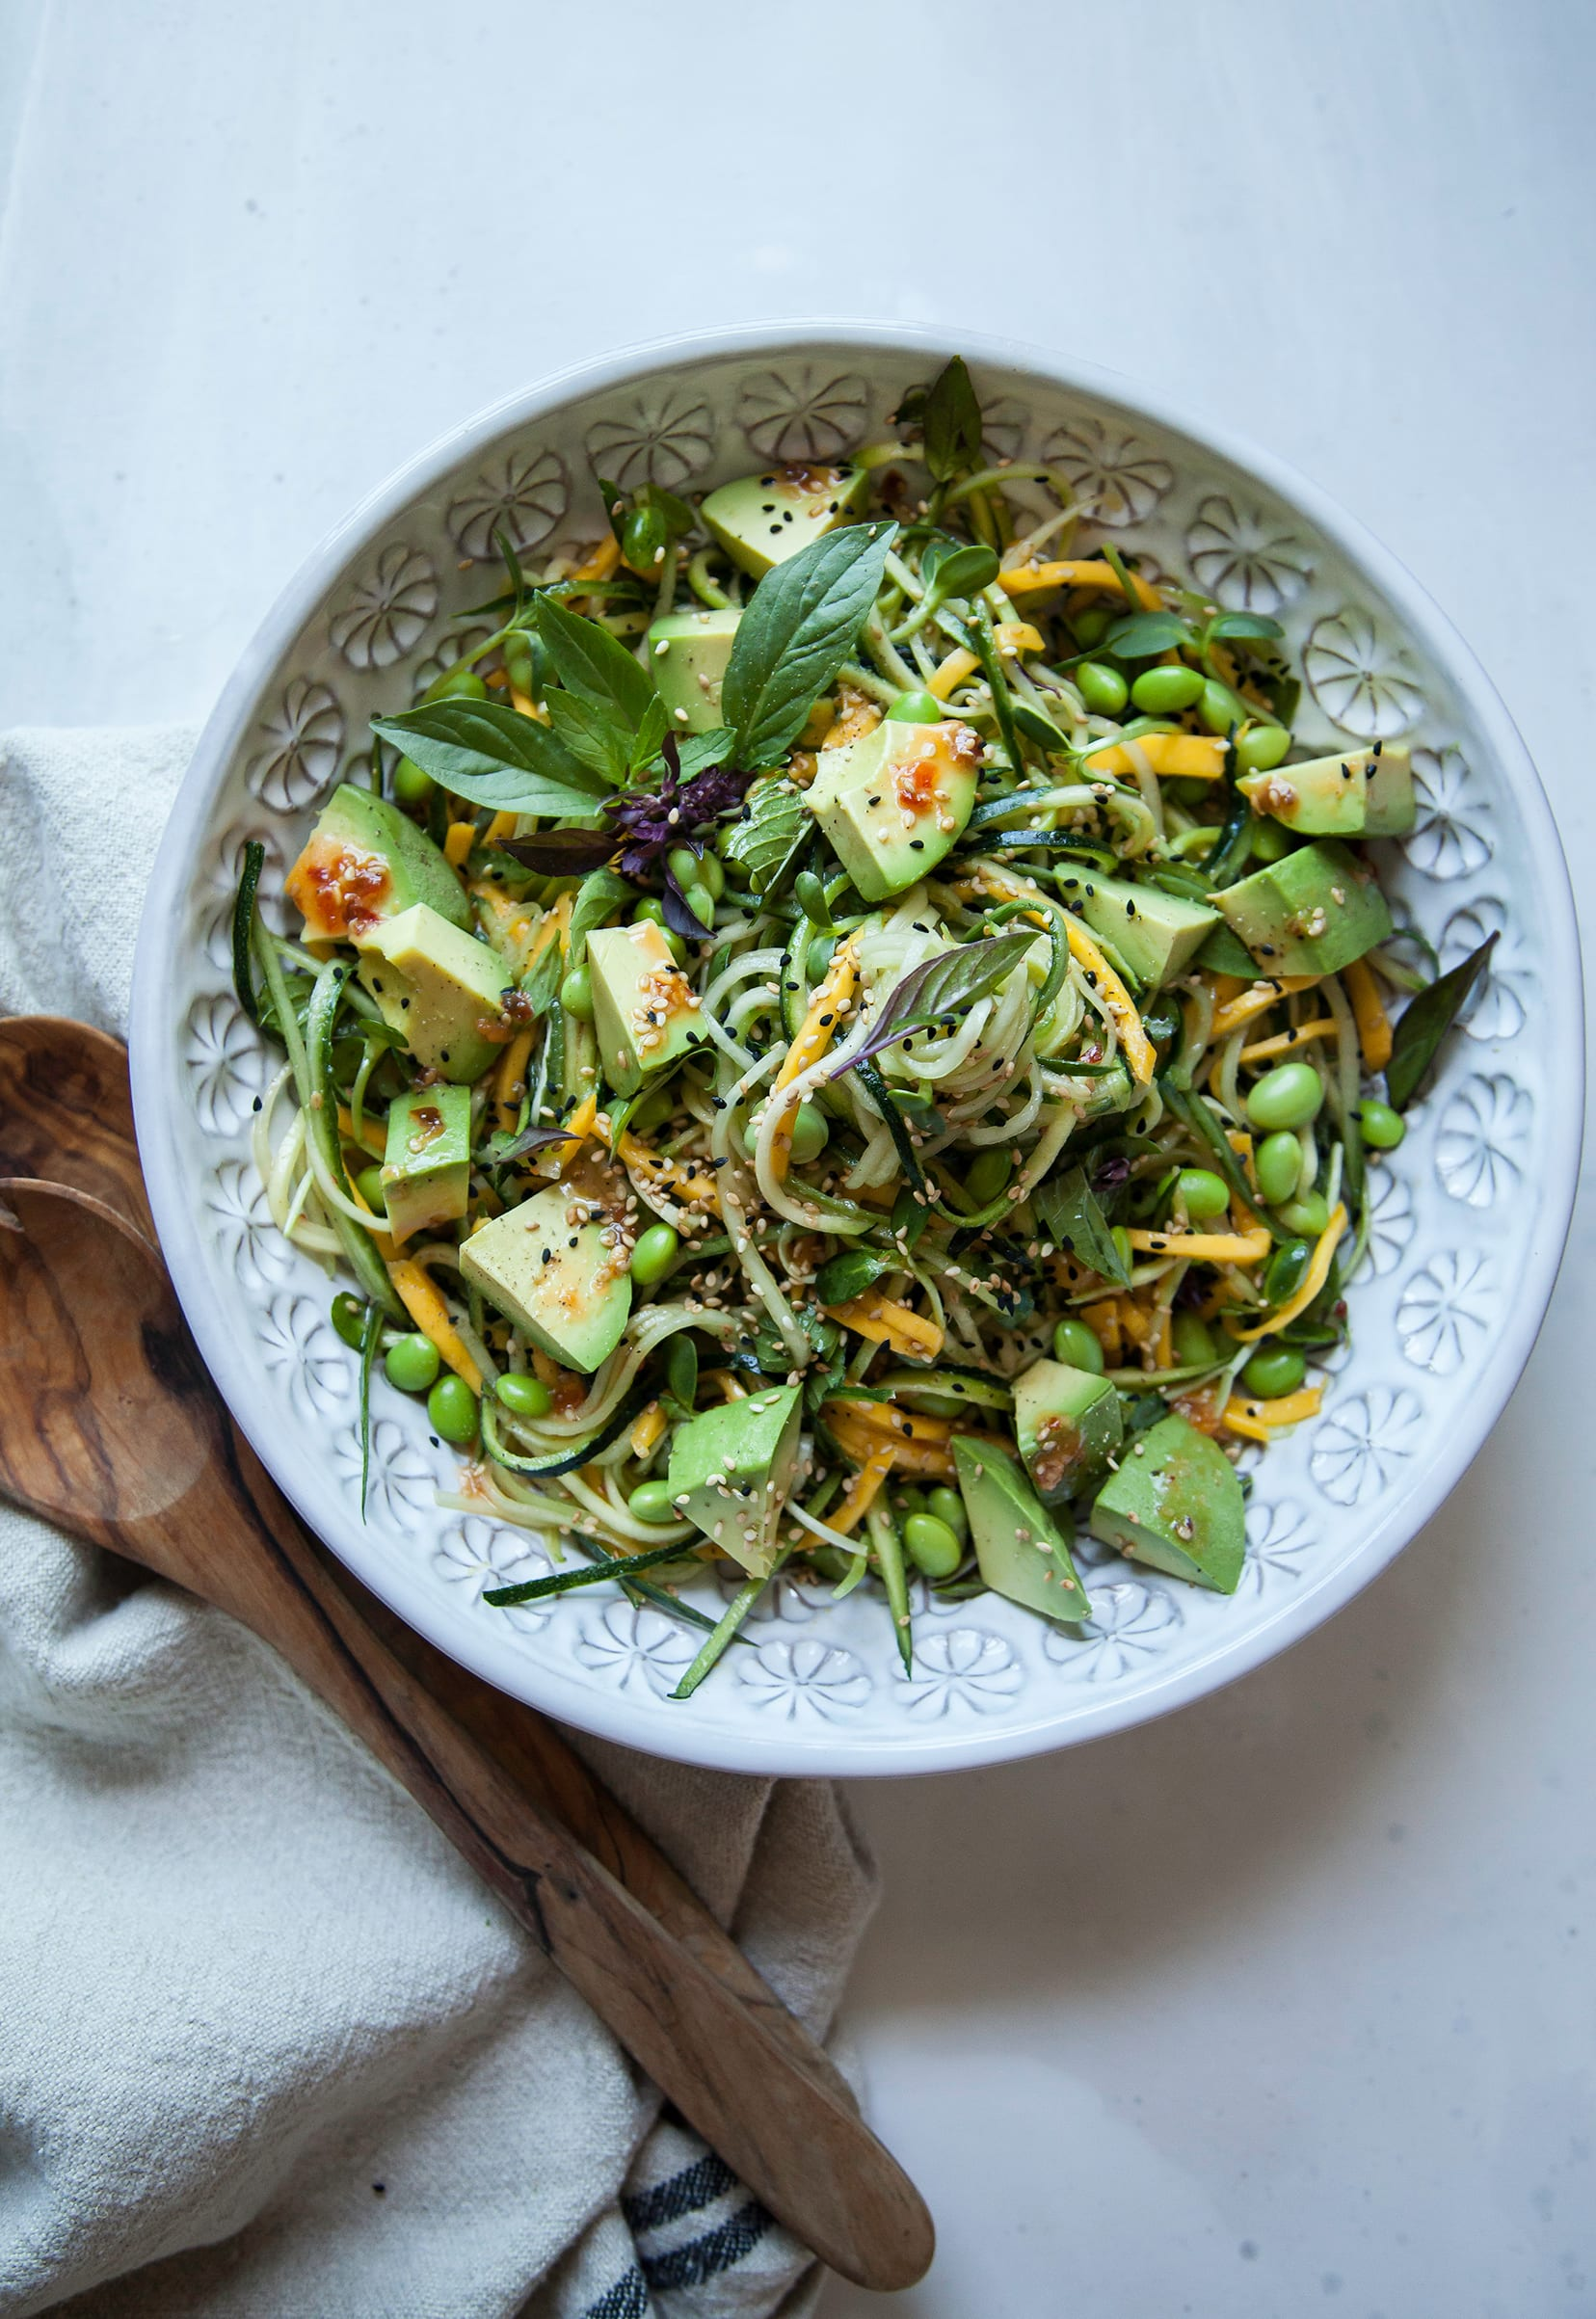 Image shows a green, veggie noodle salad with chunks of ripe avocado, mango noodles, and sesame seeds.